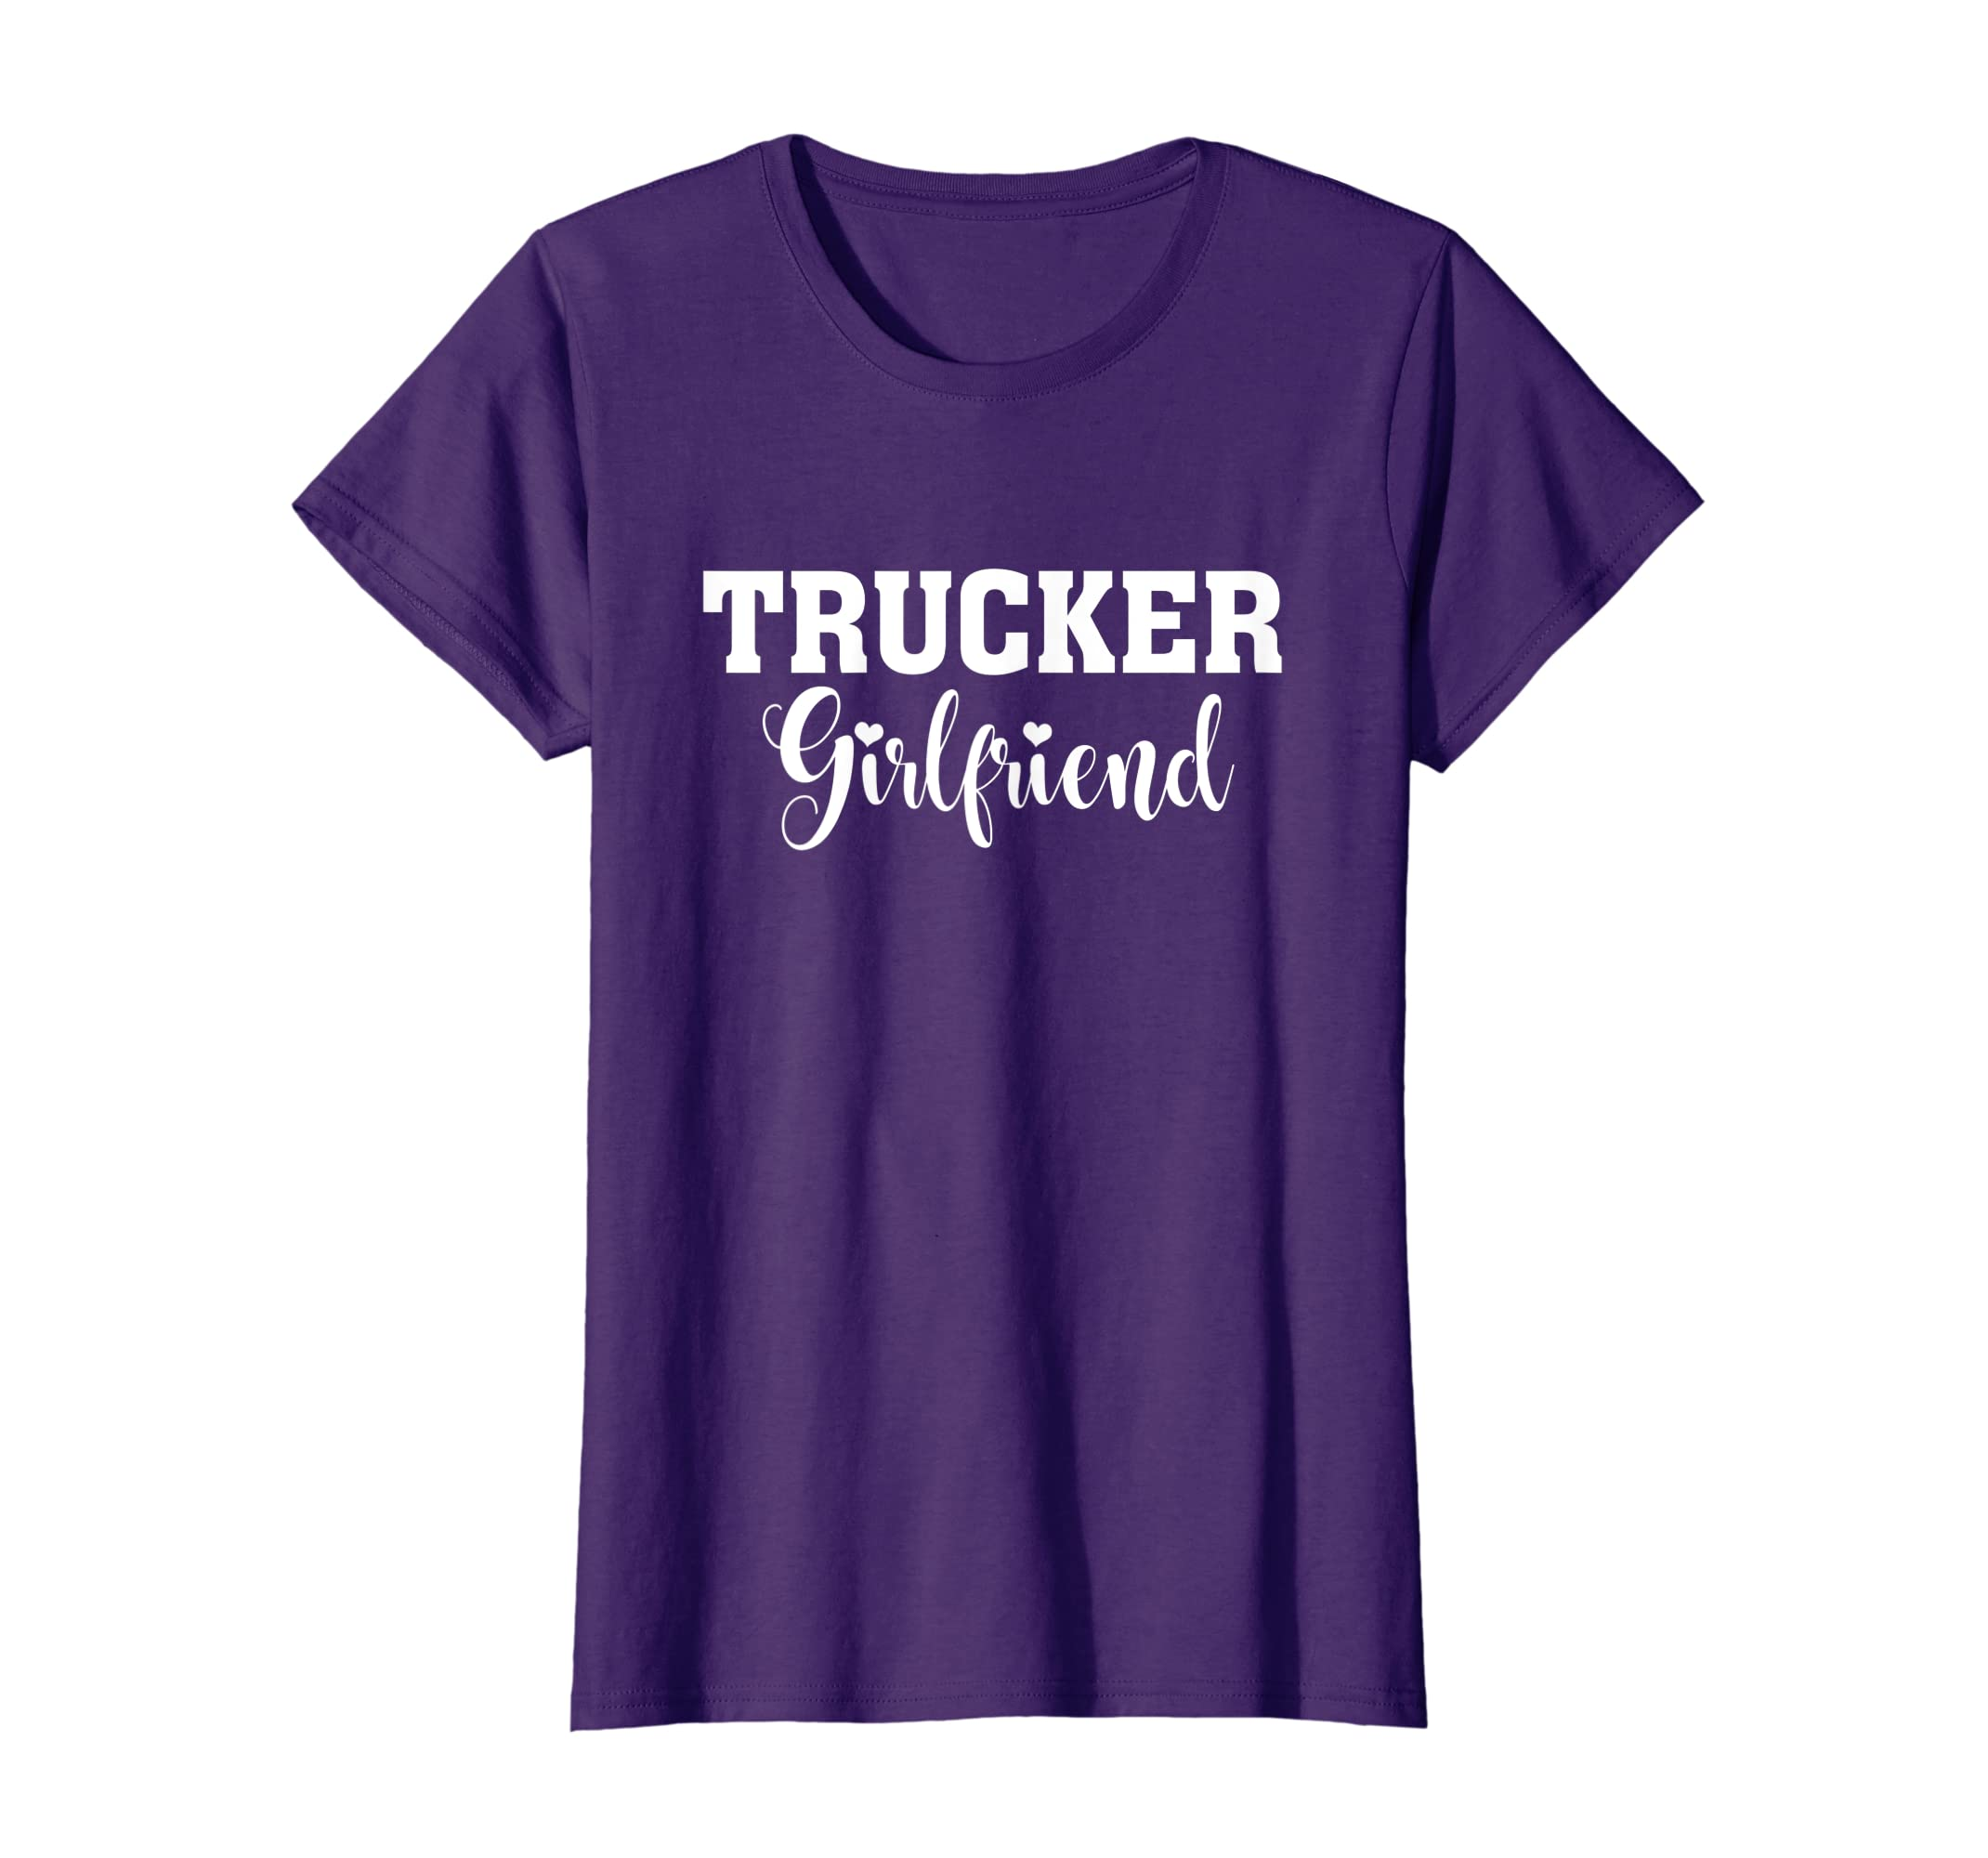 a0e8a661d02 Amazon.com  Womens Trucker Shirt Cool gift for Girlfriend wife Trucker T- Shirt  Clothing